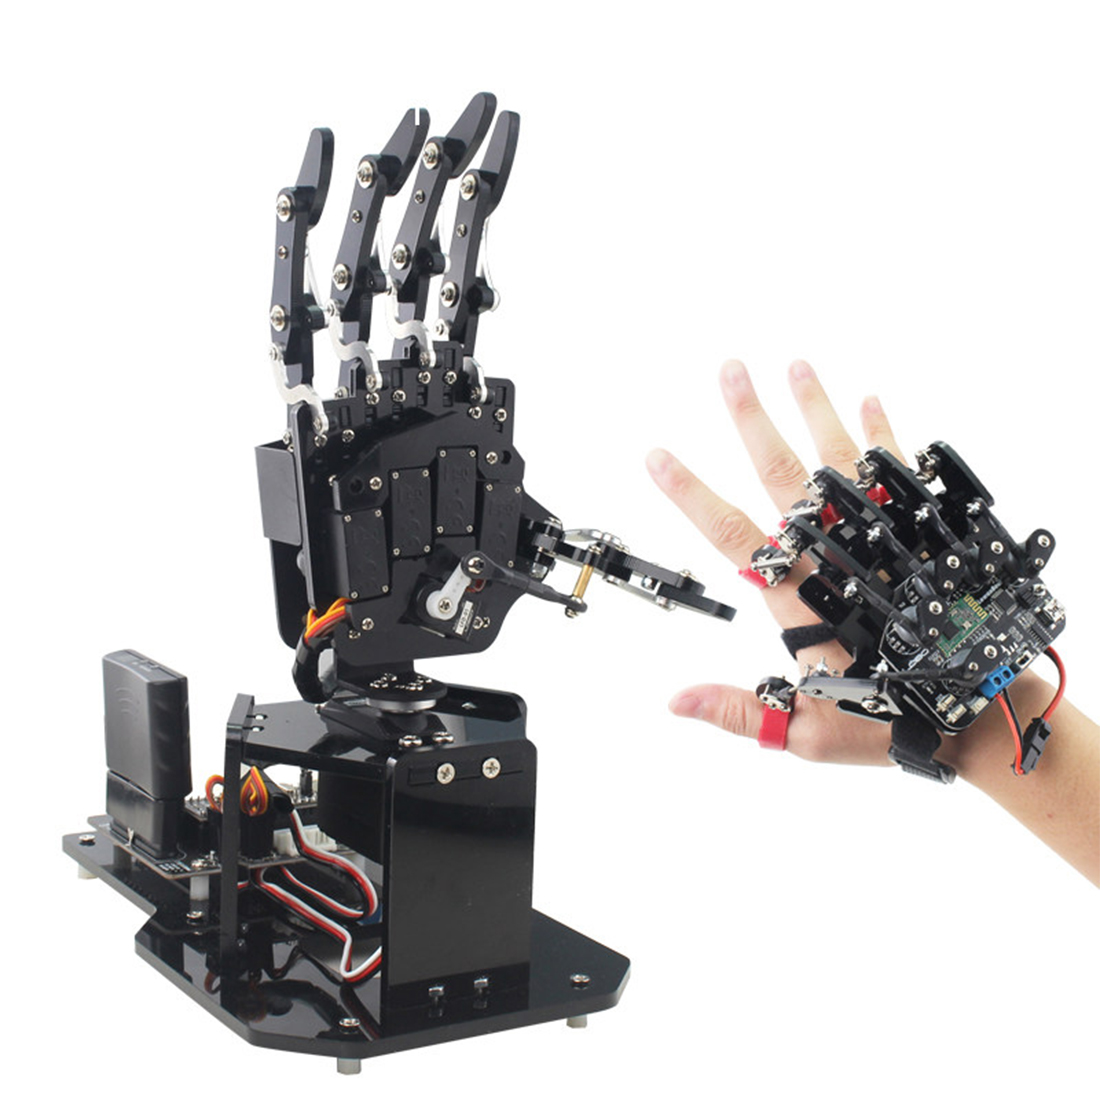 2020 New Recommend 1 Pcs Programmable Robot Palm Bionic Open Source Palm With Body Induction Gloves For STM32